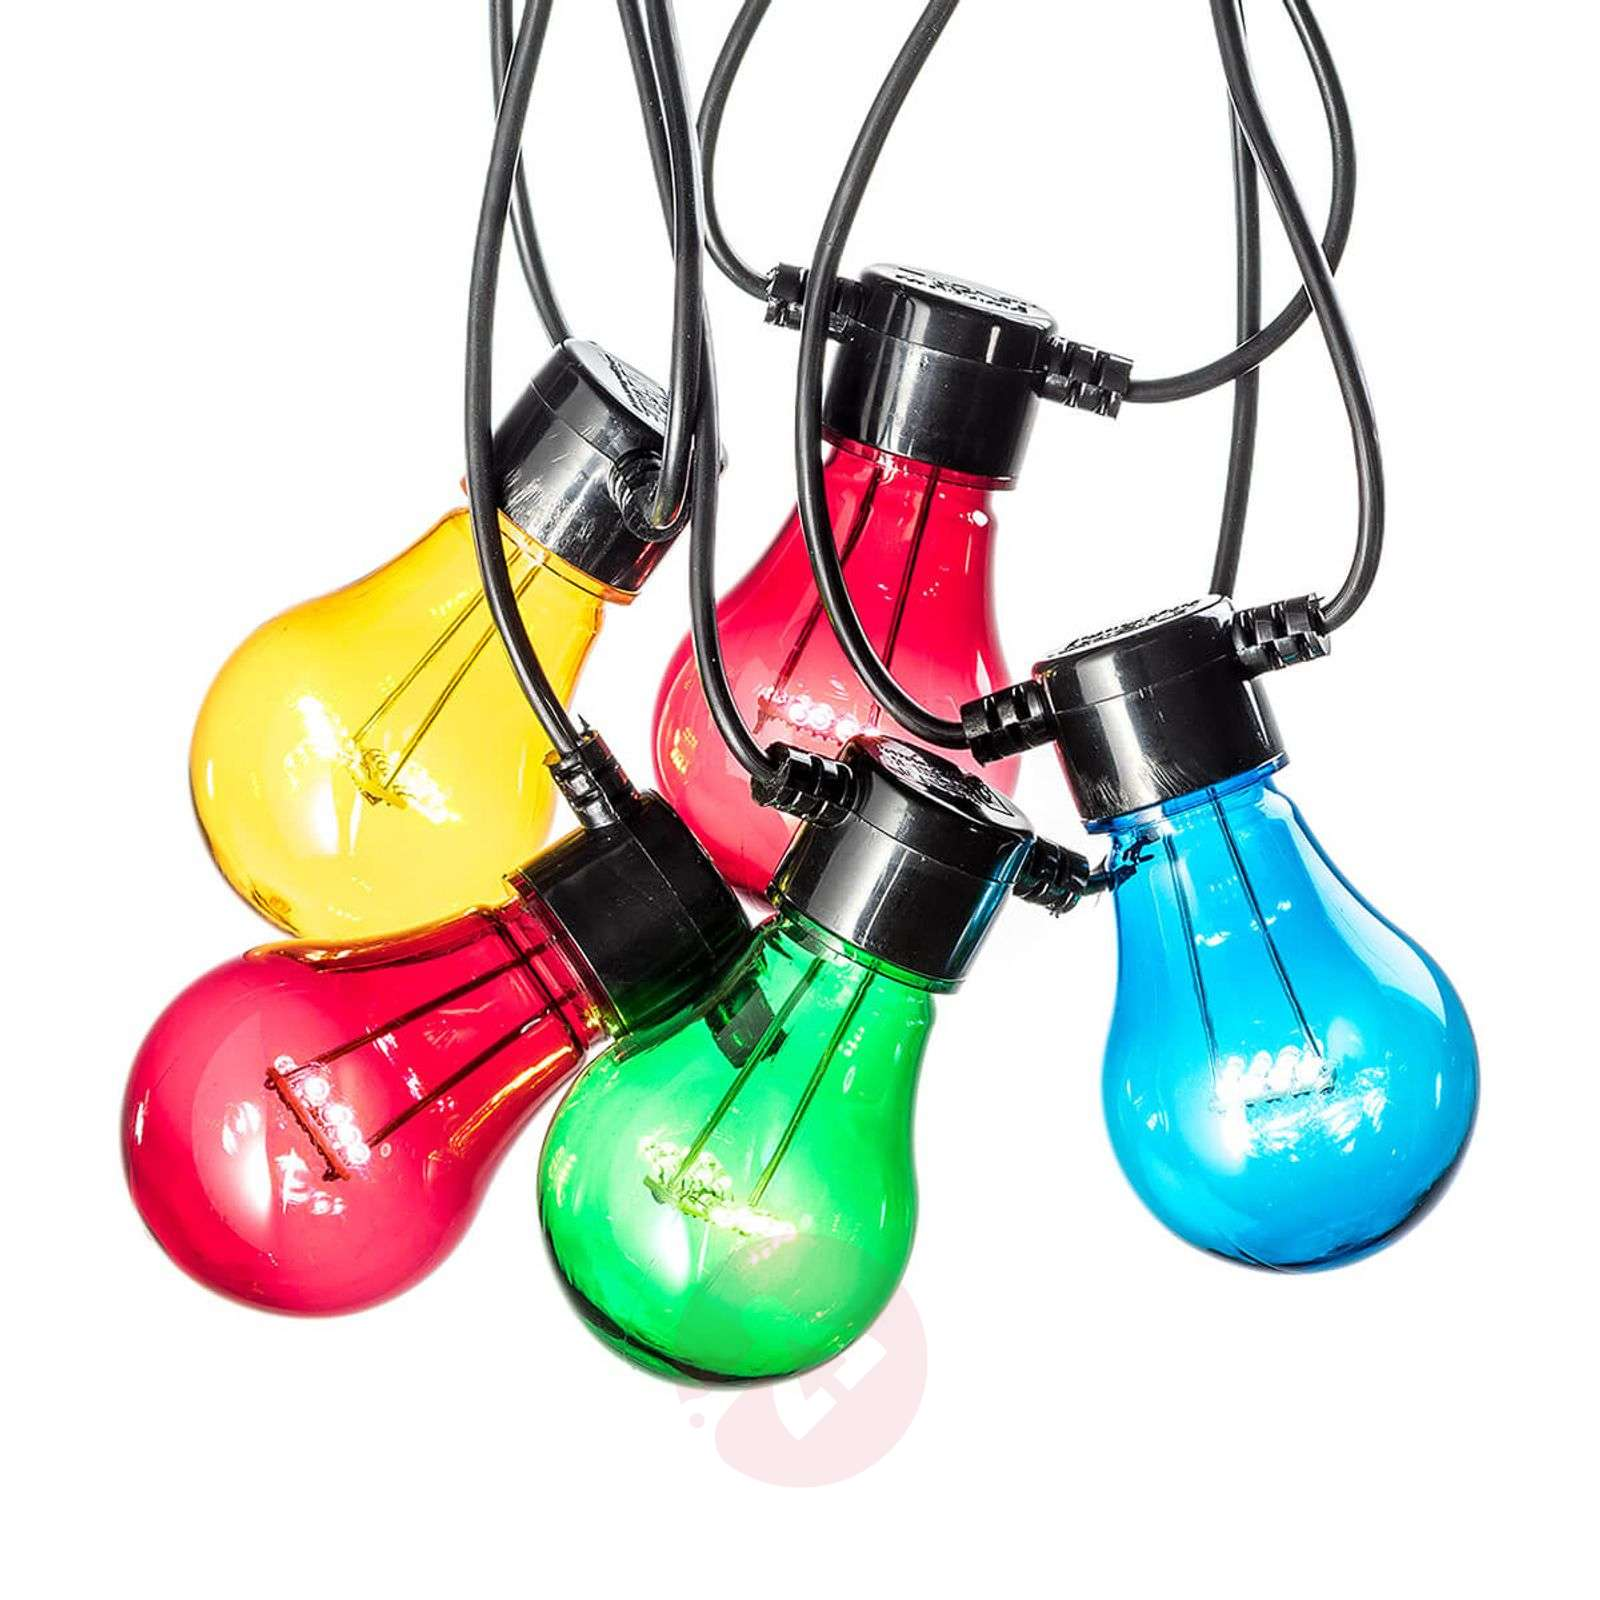 Guirlande lum. LED effet filament multicolore-5524804-01